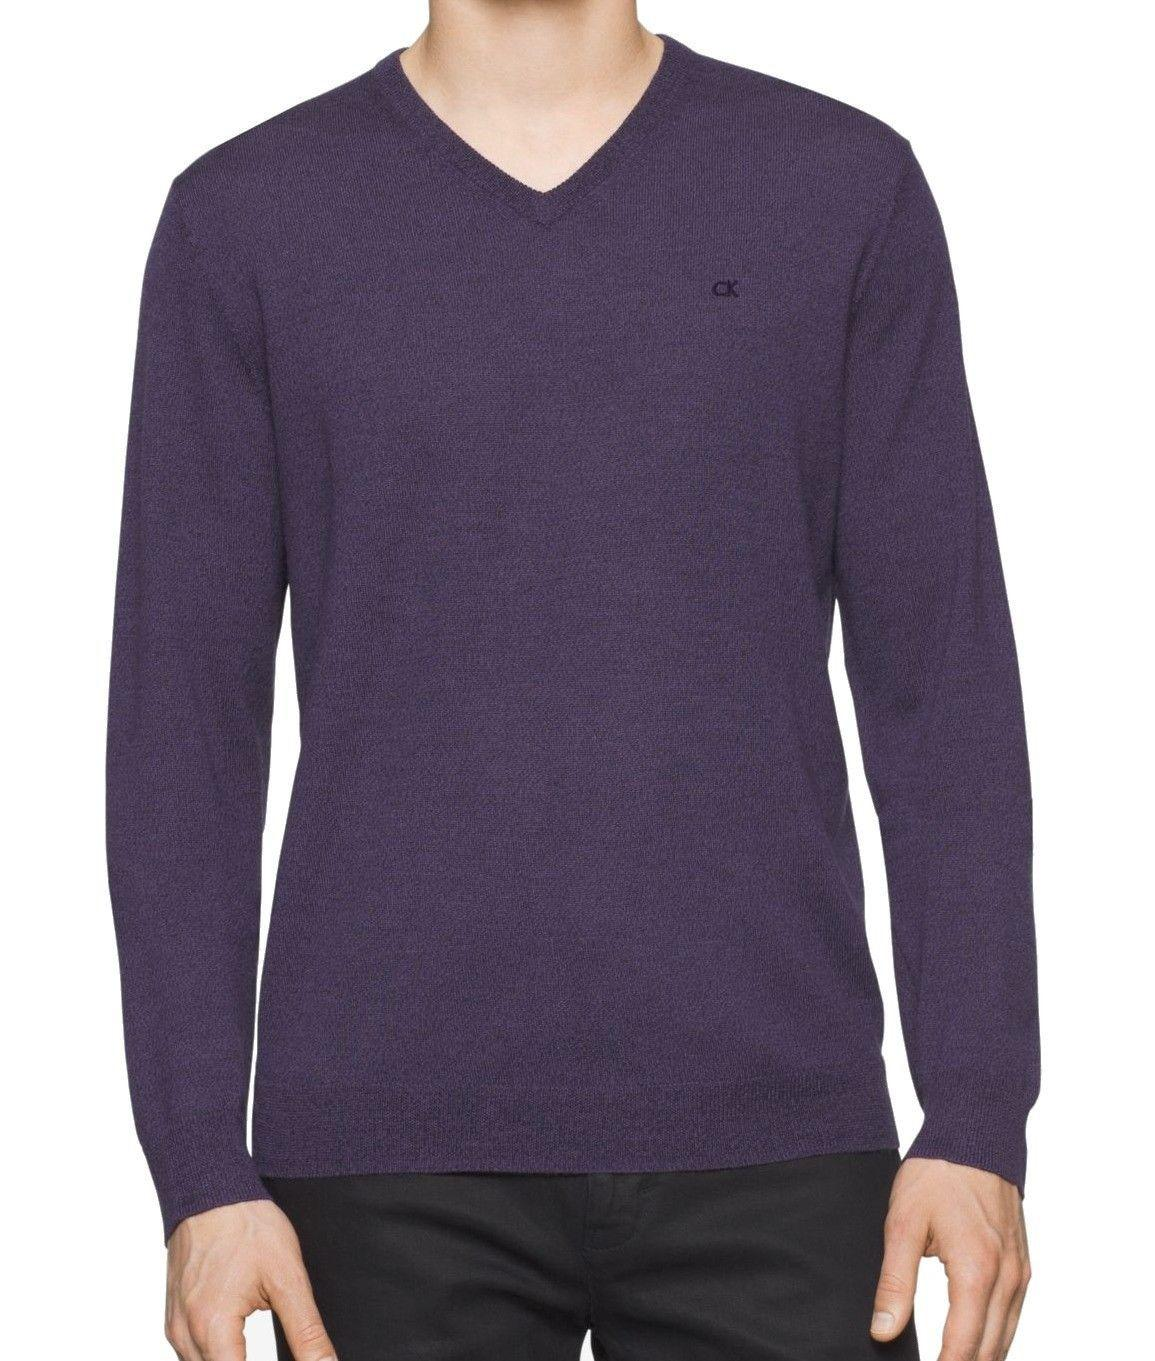 Calvin klein Amethyst Purple Mens Size Xl V-neck Wool Sweater for ...